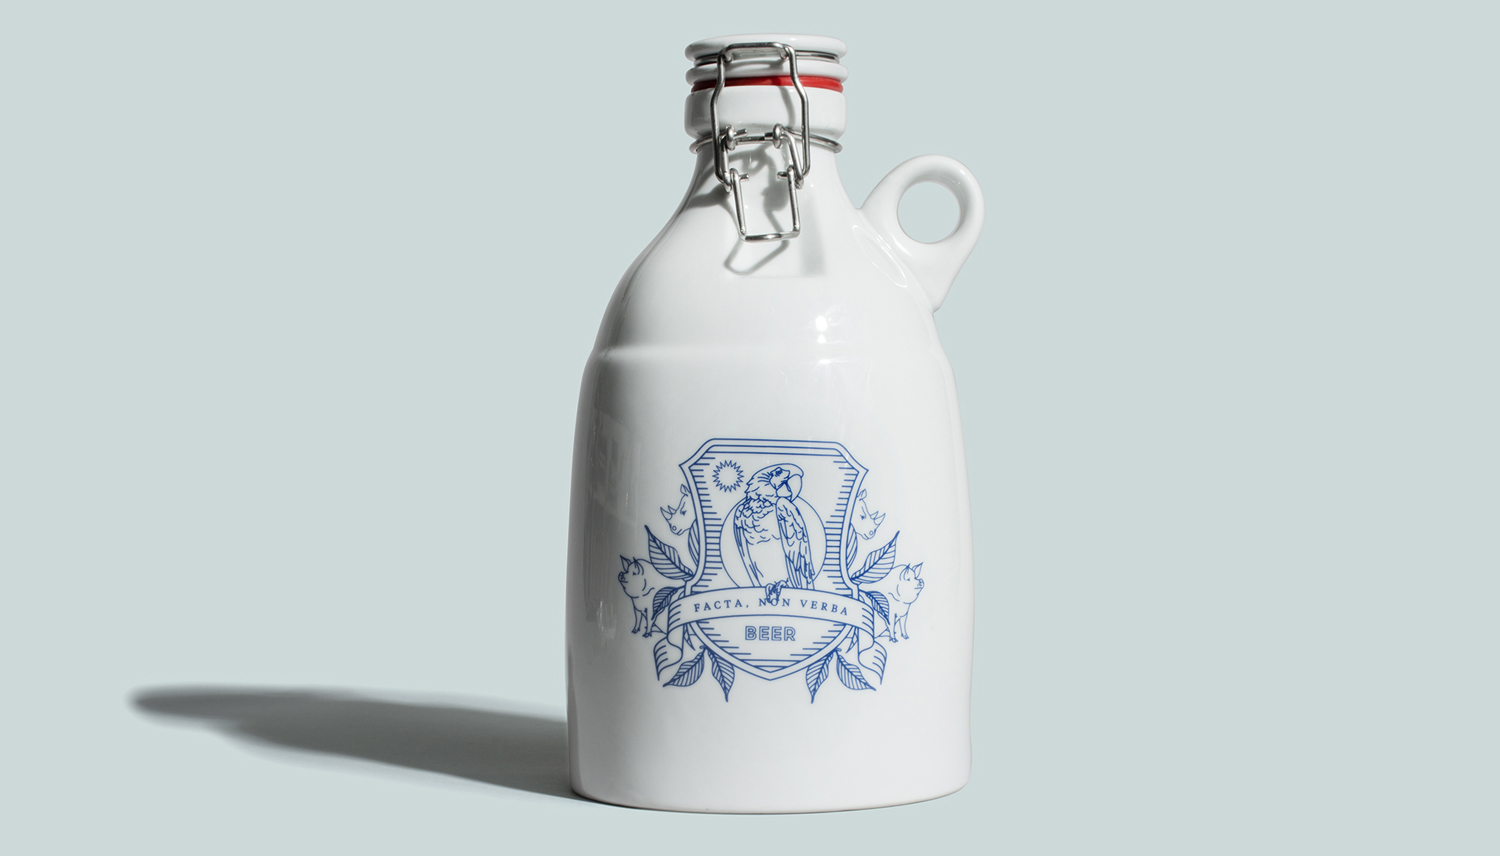 Branded growler designed by Glasfurd & Walker for US and Canadian restaurant chain prototype Earls.67